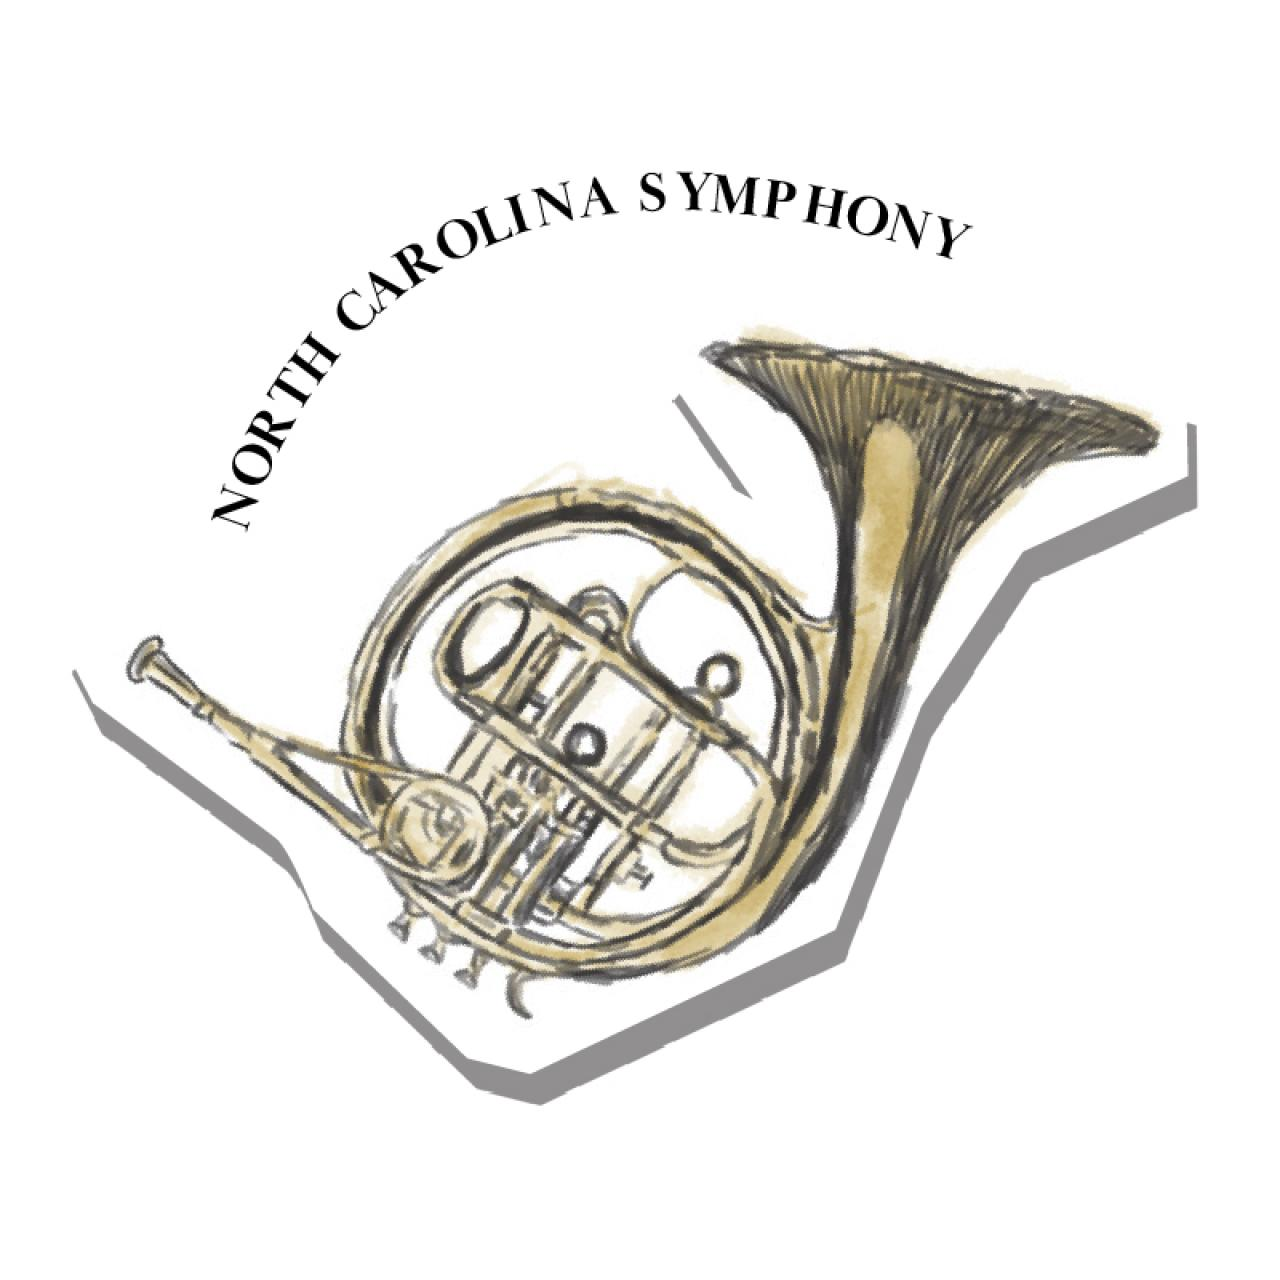 An illustration of a french horn, North Carolina Symphony